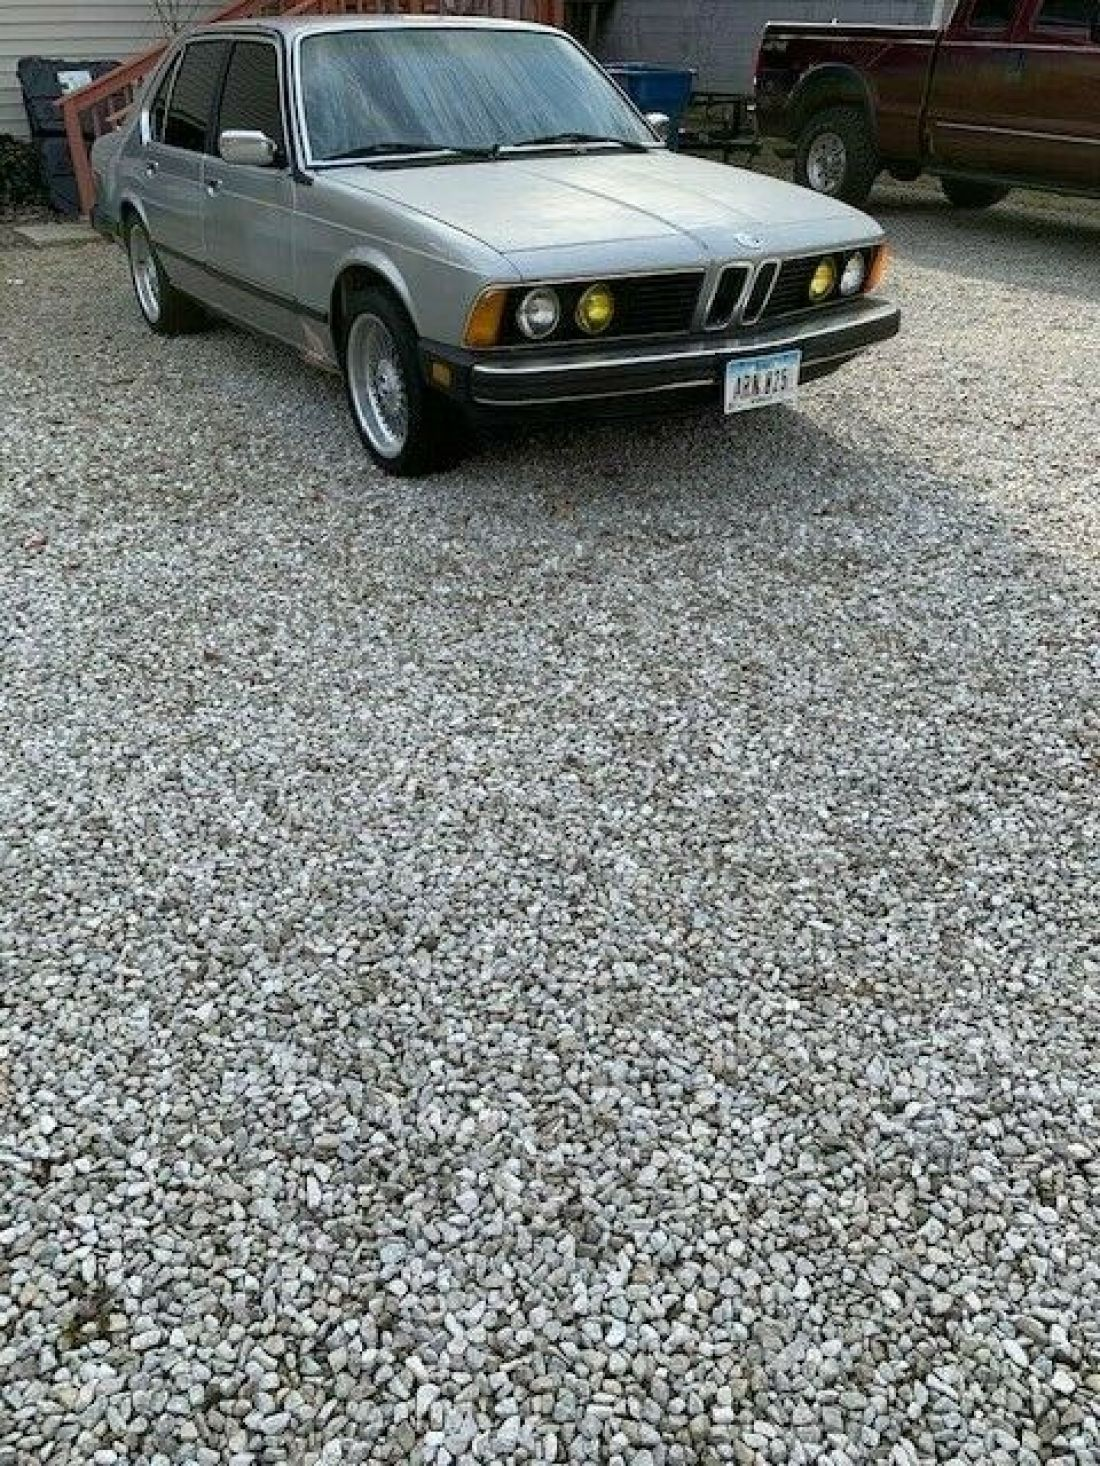 1982 Bmw 733i 5 Speed Manual Transmission For Sale Manual Guide